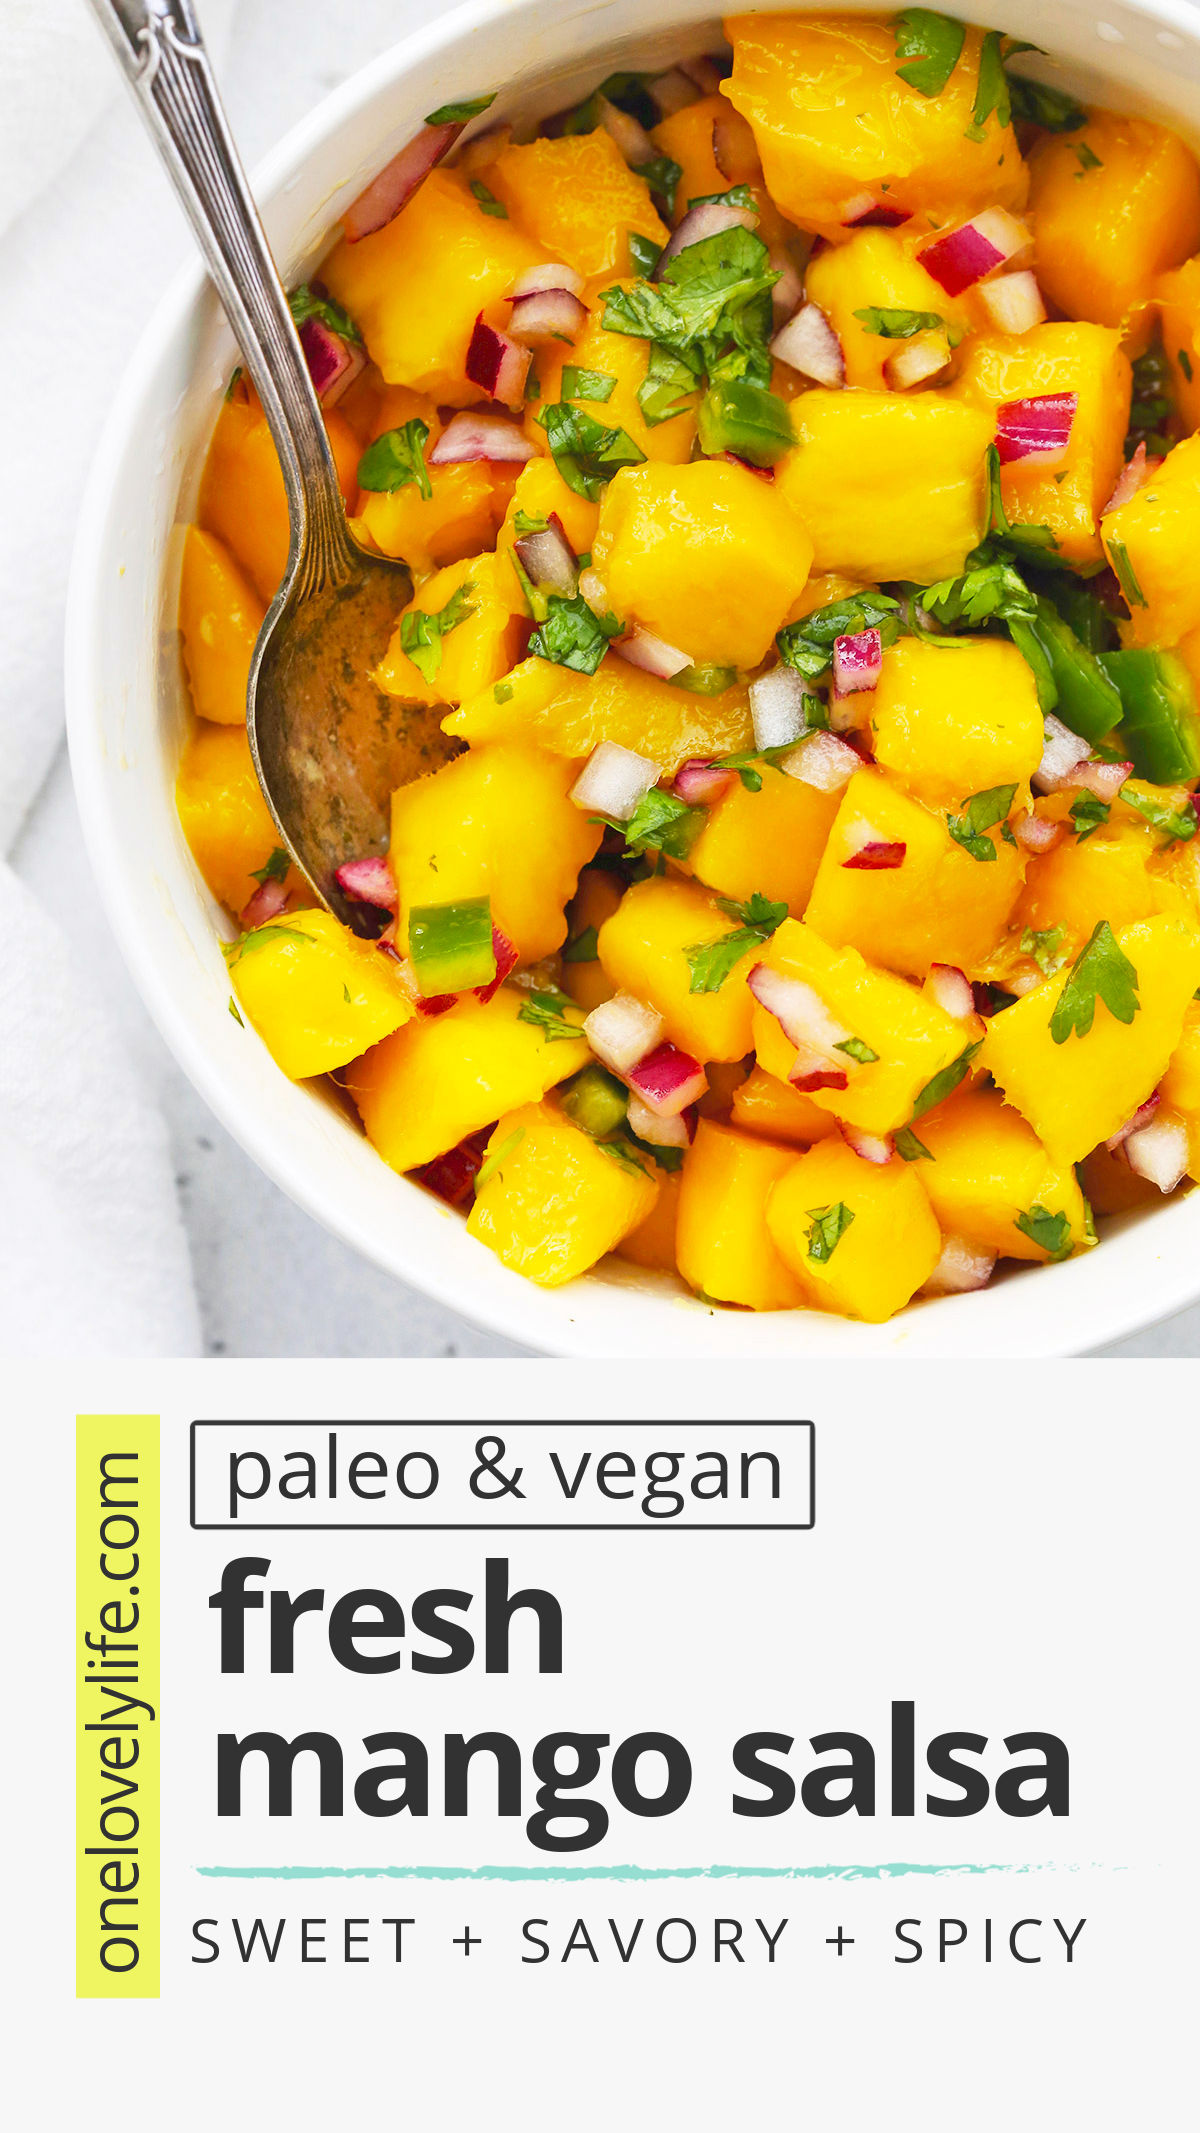 Fresh Mango Salsa - This mango salsa makes just about anything taste better! It's the perfect blend of spicy and sweet. (Naturally gluten-free, vegan, and paleo) // Mango Salsa Recipe // Easy Homemade Salsa // Tex-Mex // Healthy appetizer // Healthy dip // mango recipes // mango salsa for tacos // #mango #mangosalsa #salsa #appetizer #dip